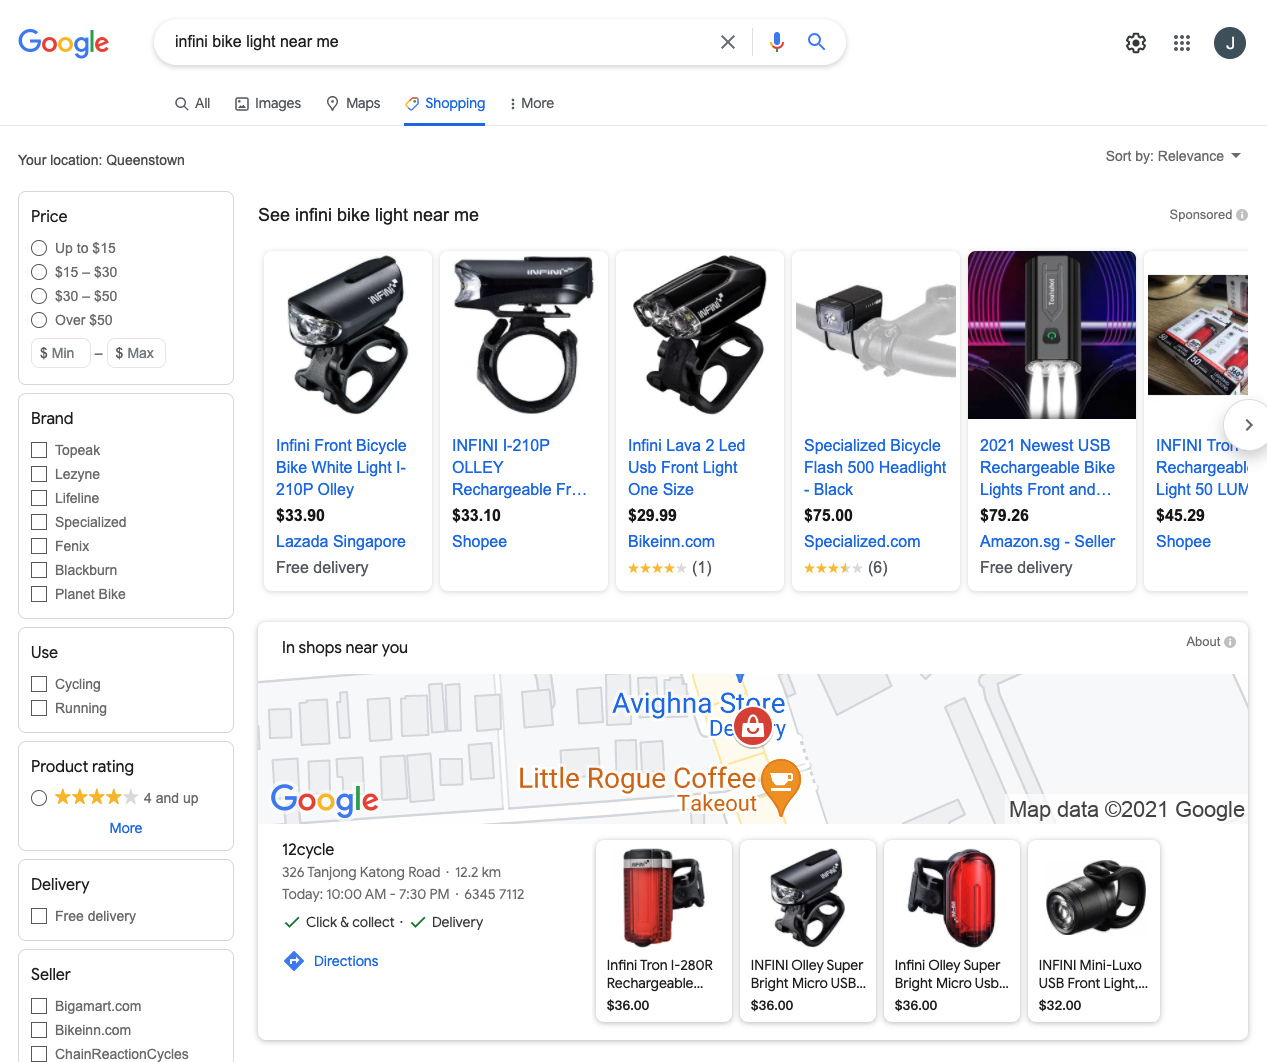 Google Shopping local inventory listings